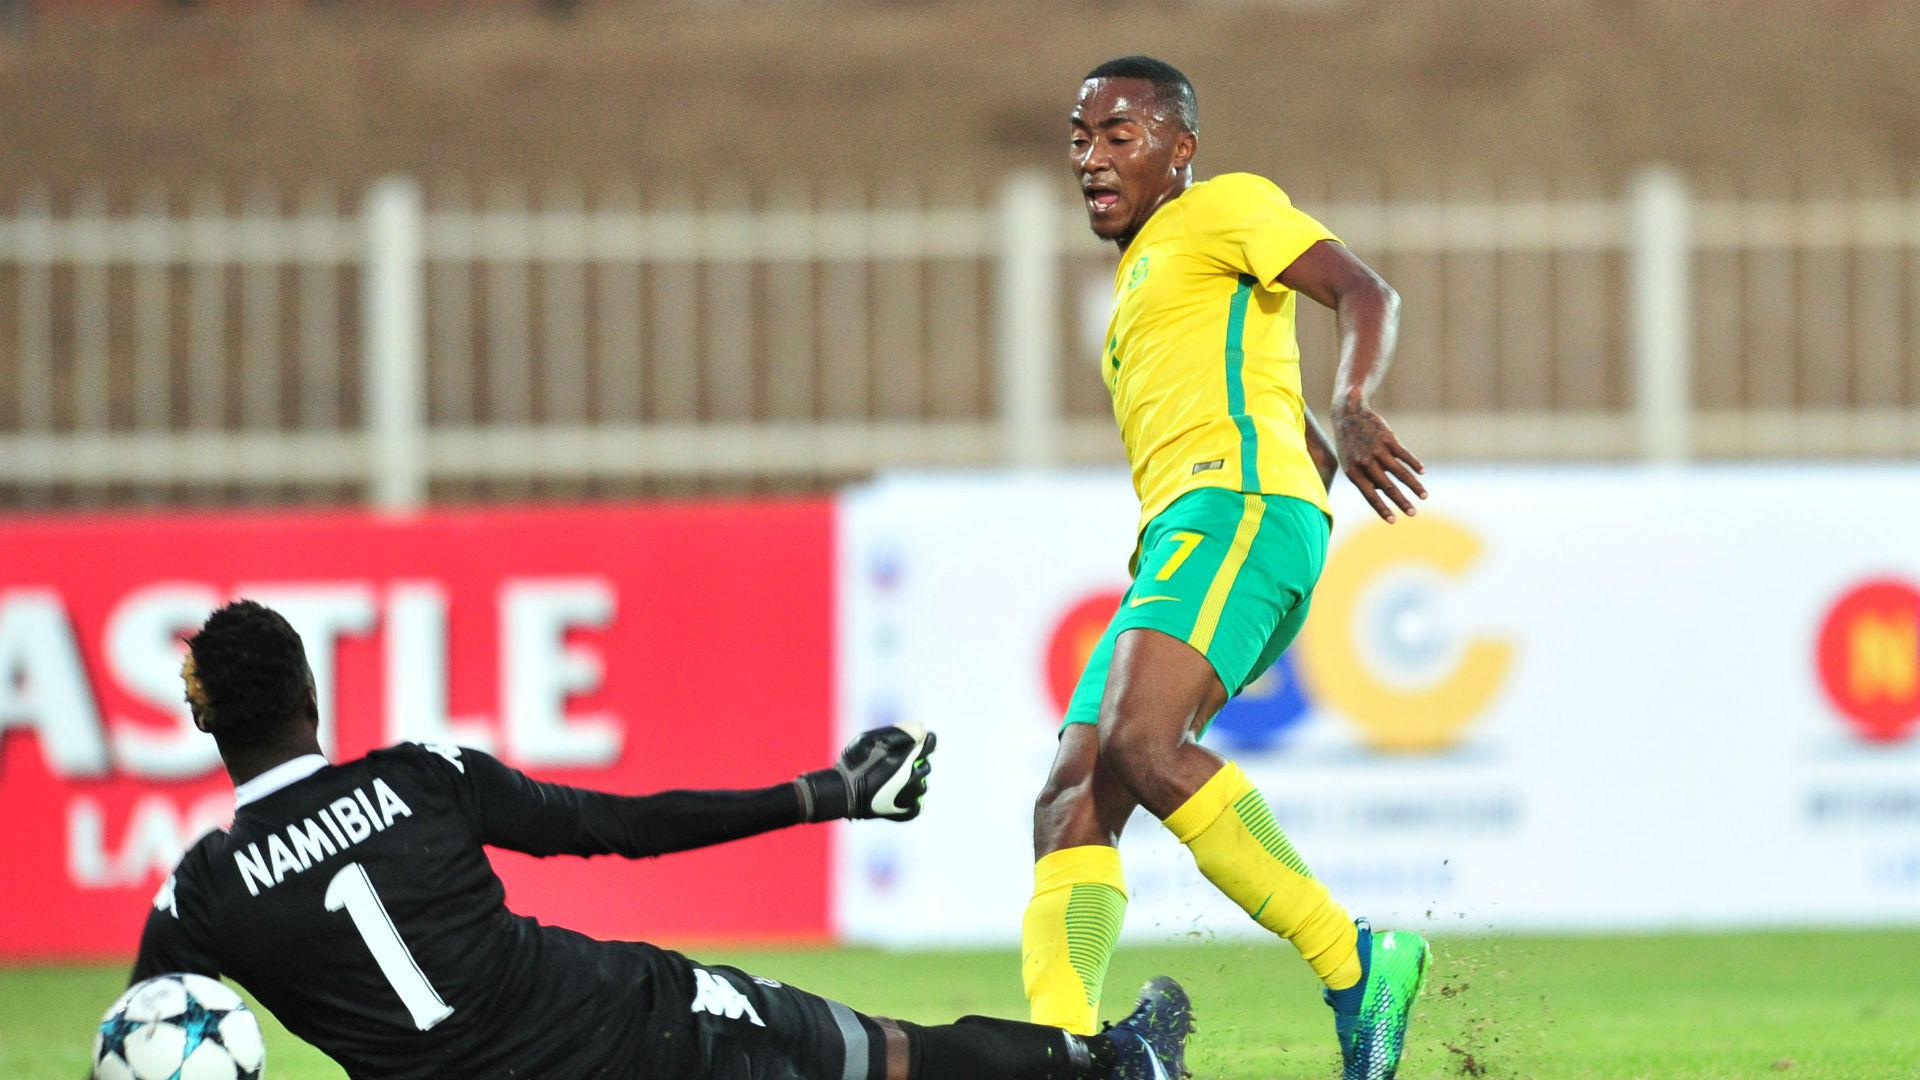 Namibia 1-4 South Africa: Bafana Bafana thump Brave Warriors to reach Plate fina...